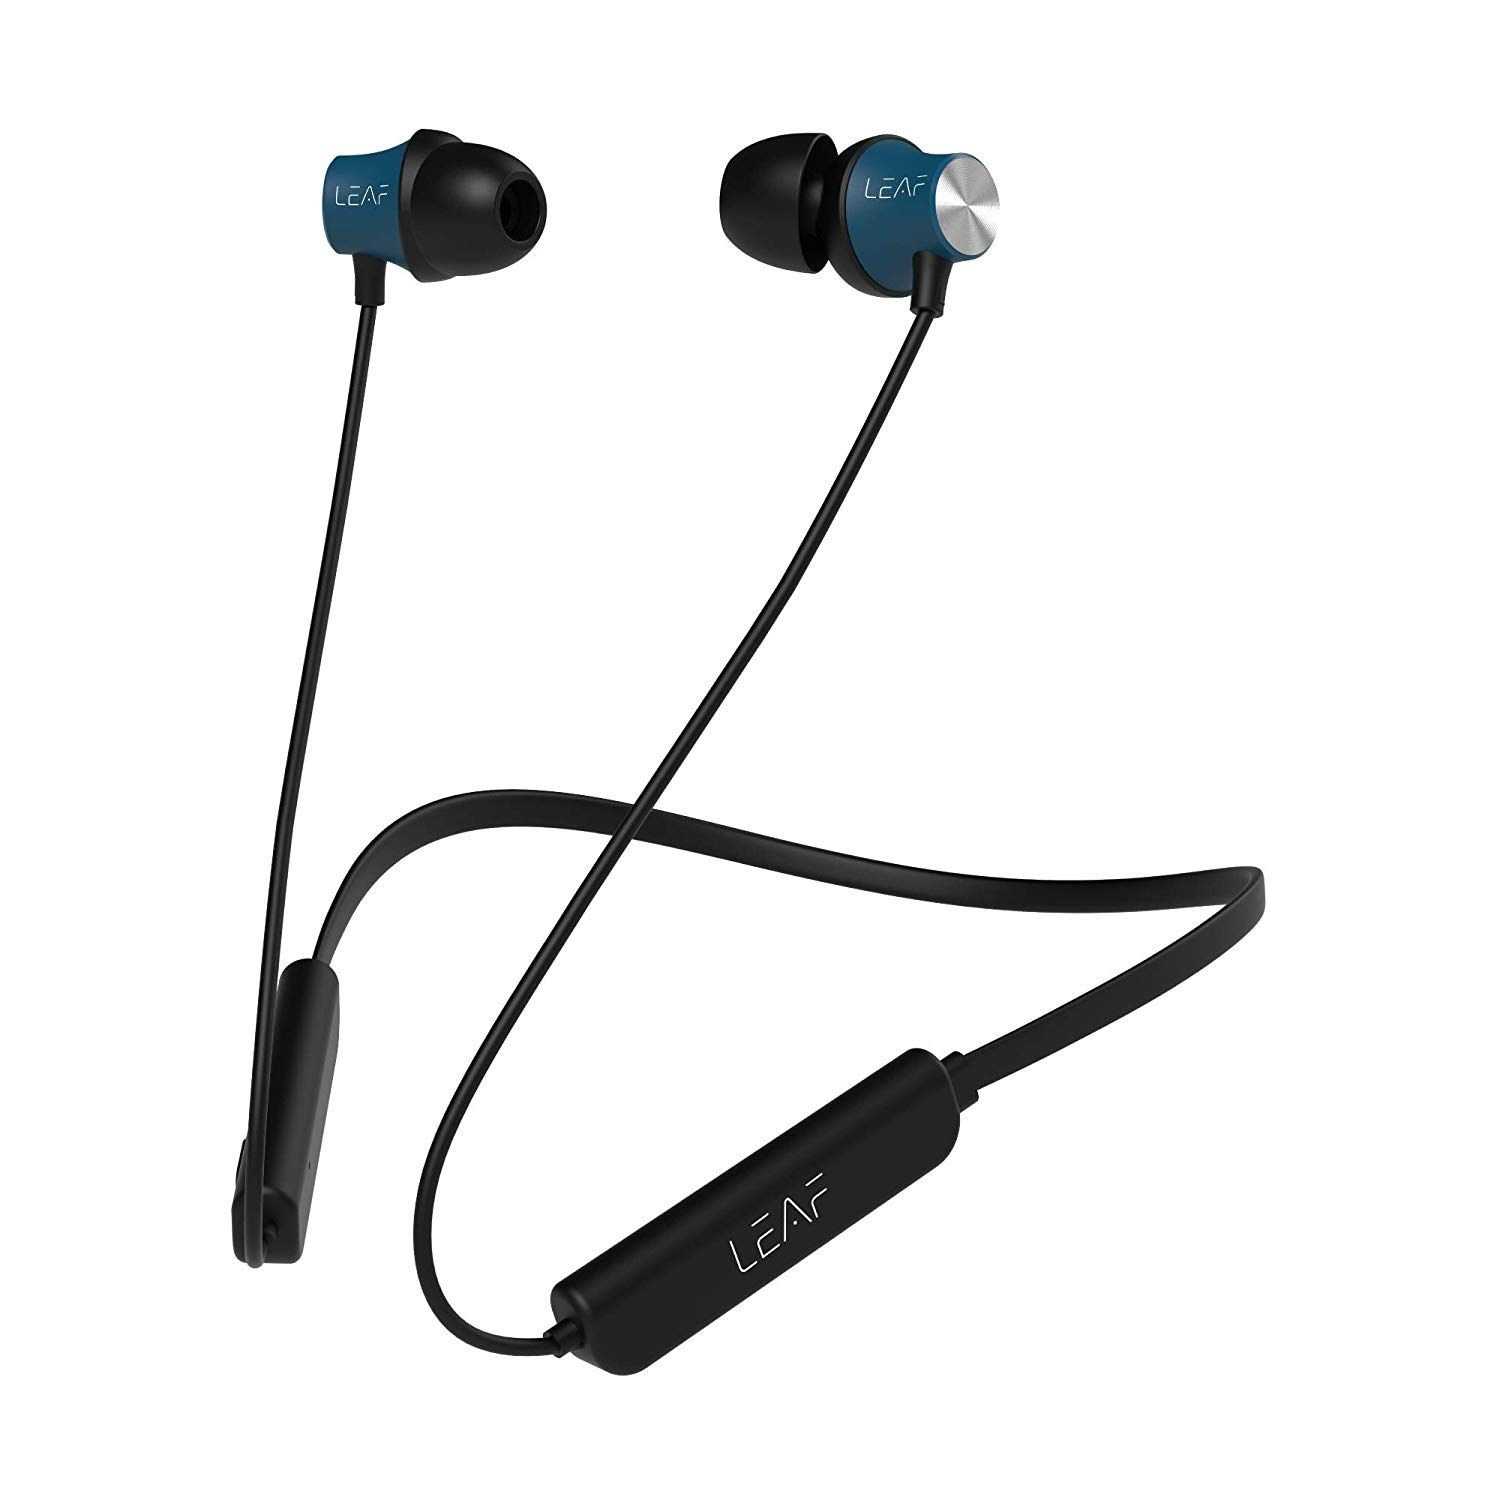 Best Earphones Under 500 Rs Bluetooth Earphones Earphone Best Wireless Earphones